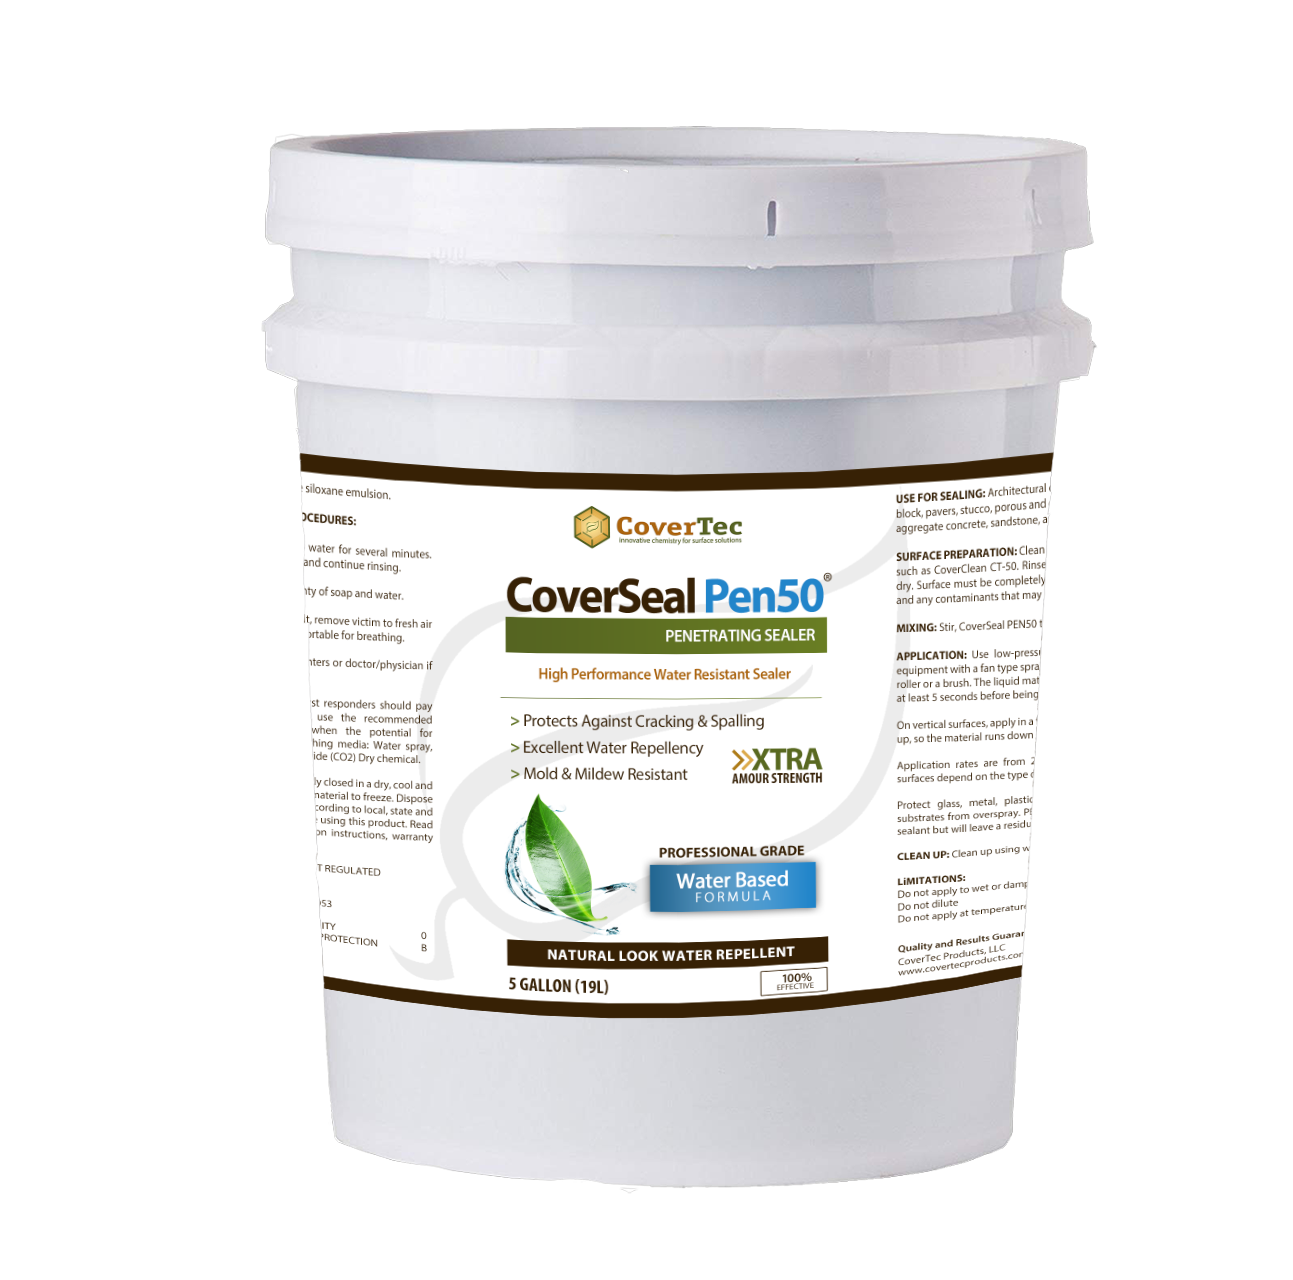 CoverSeal PEN 50 Water, Salt And Mold Resistant Penetrating Sealer 5 Gallon